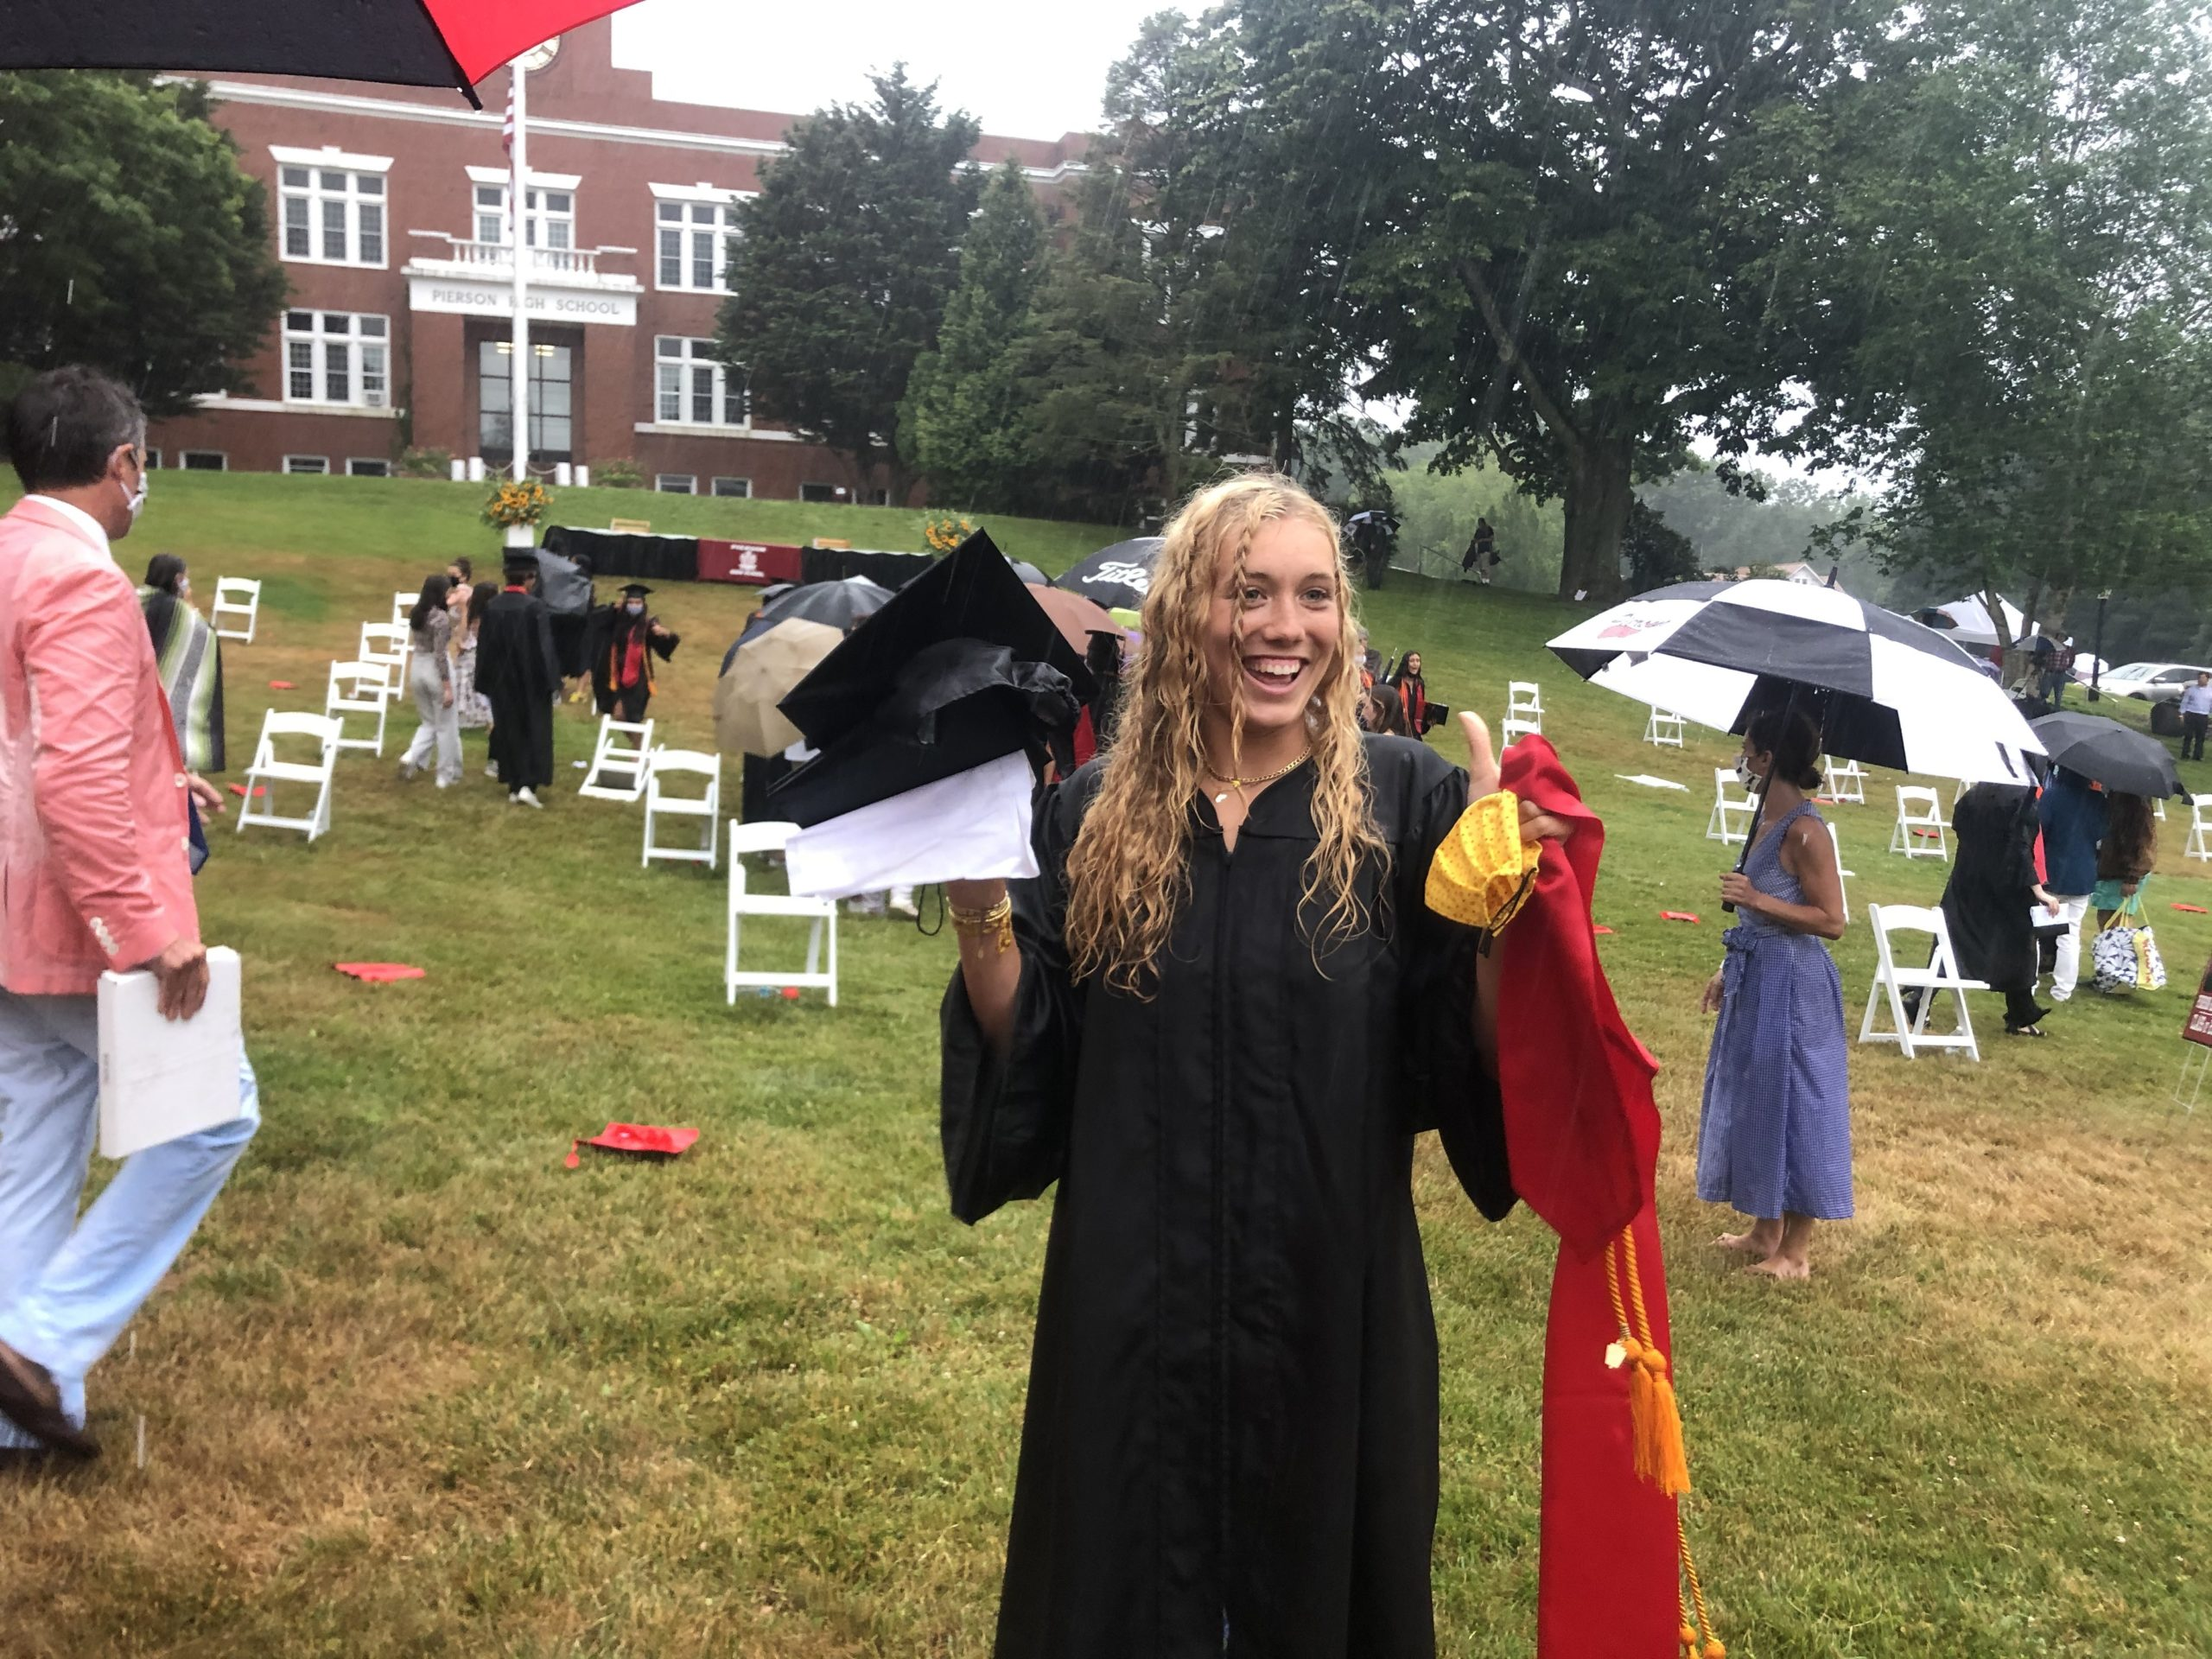 Cancer survivor Halle Kneeland dries off from a rainstorm after graduating from Pierson High School on June 27.